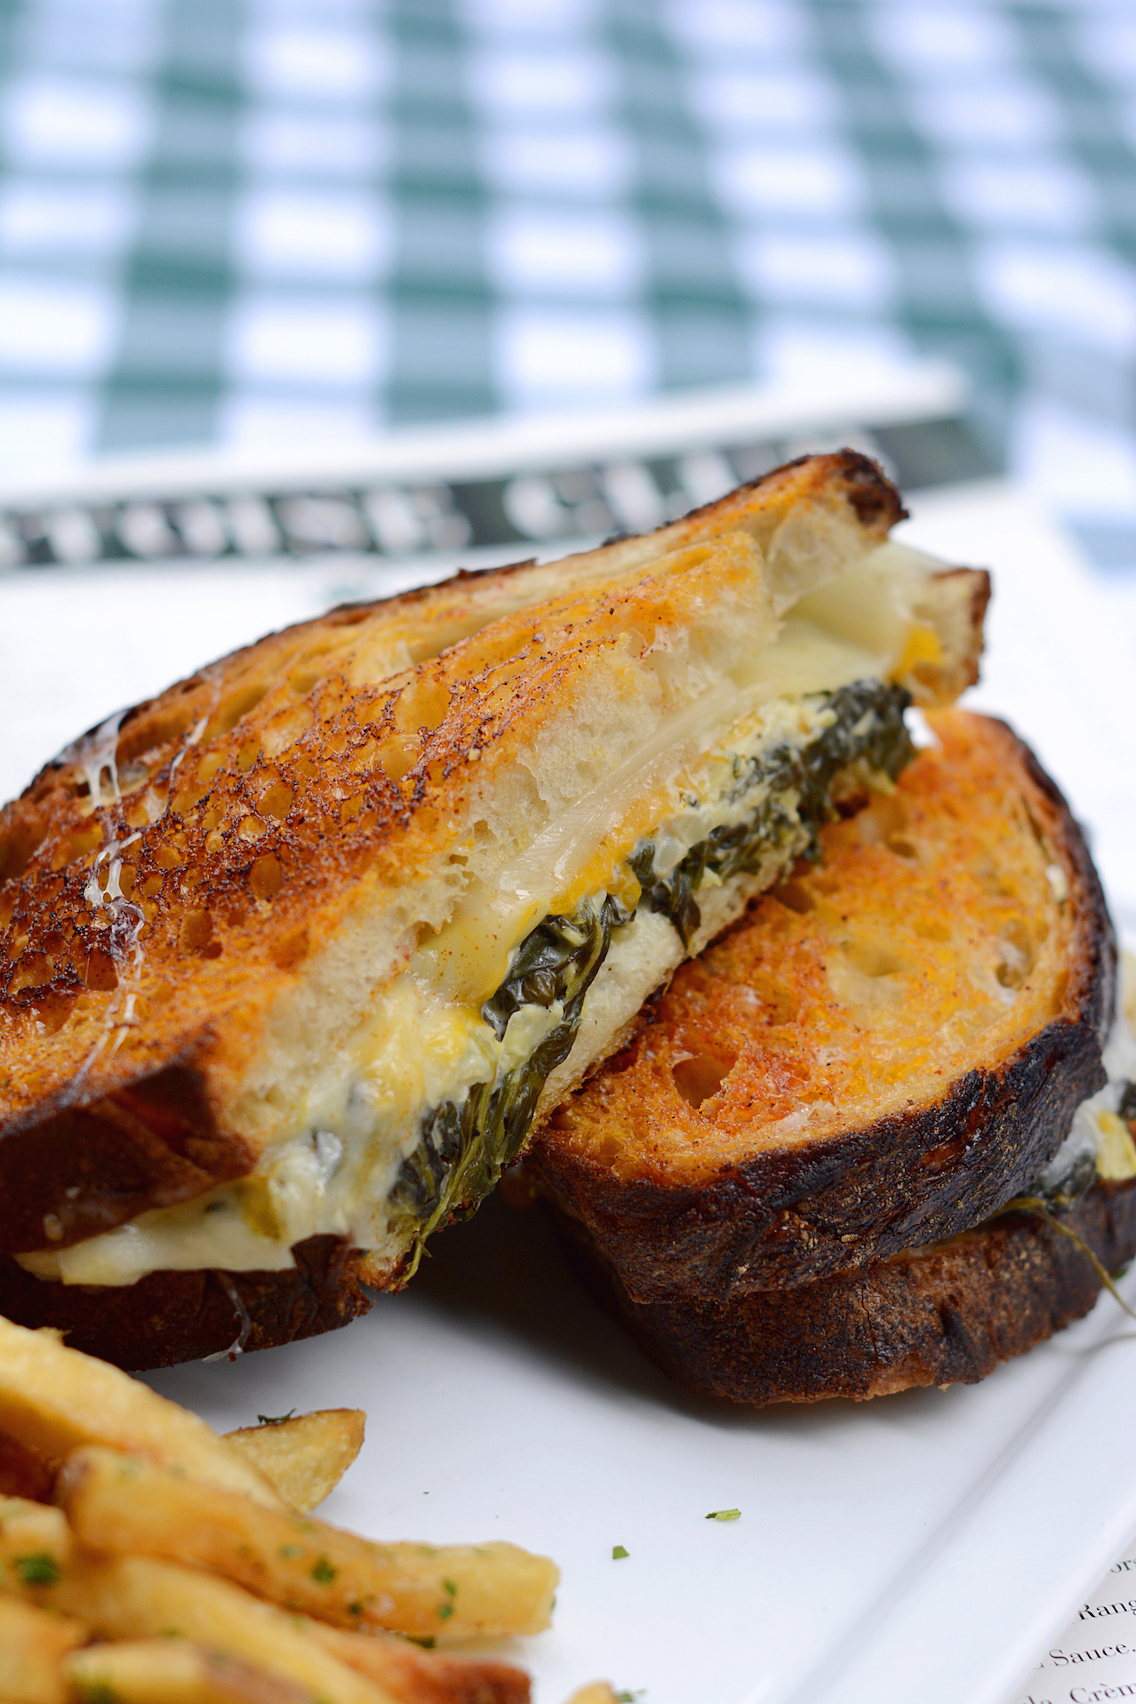 Tortoise Club Spinach and Artichoke Grilled Cheese Sandwich